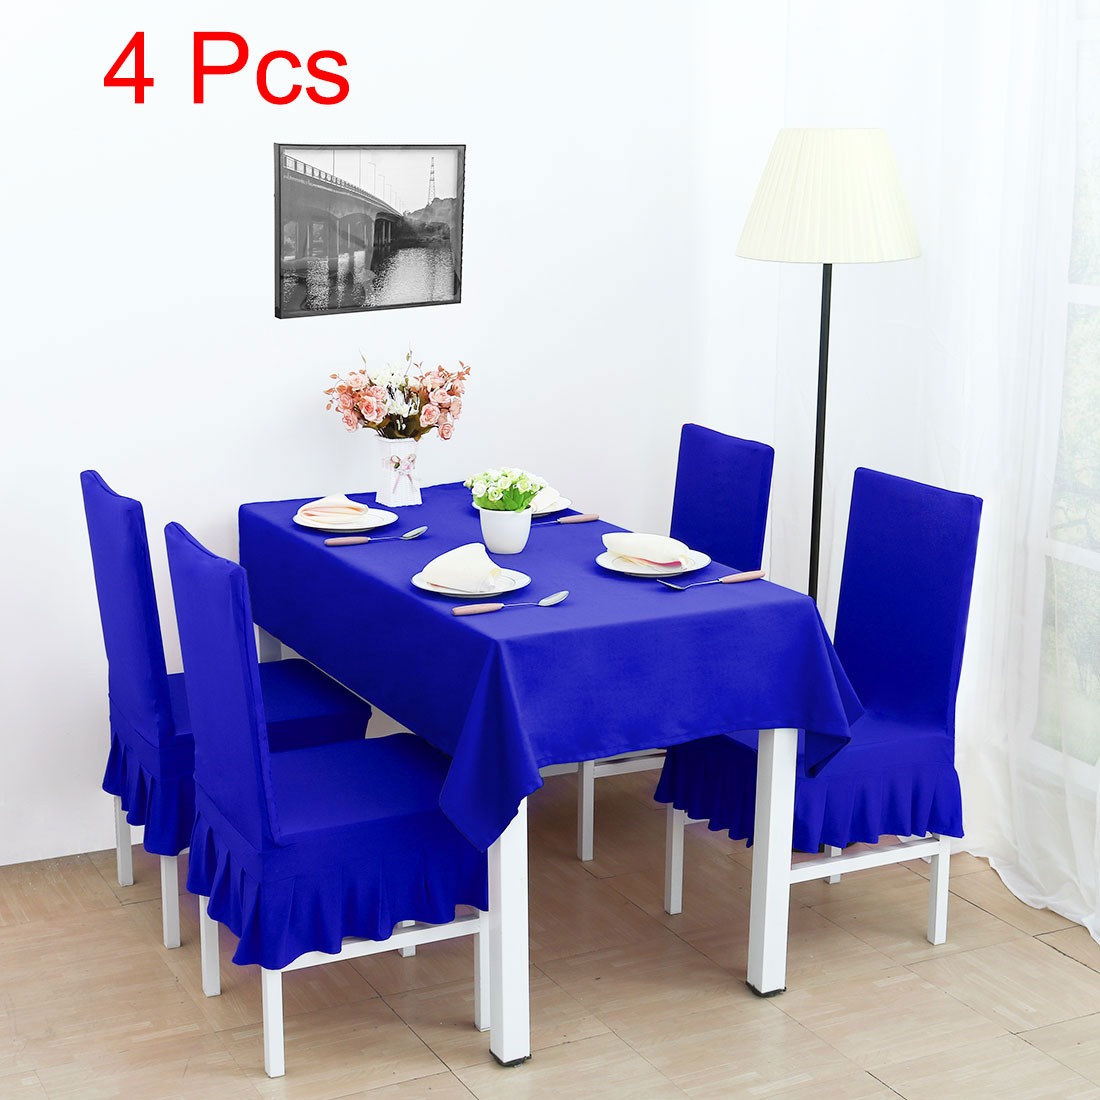 royal blue chair covers meditation spandex stretch washable dining cover protector slipcover walmart com